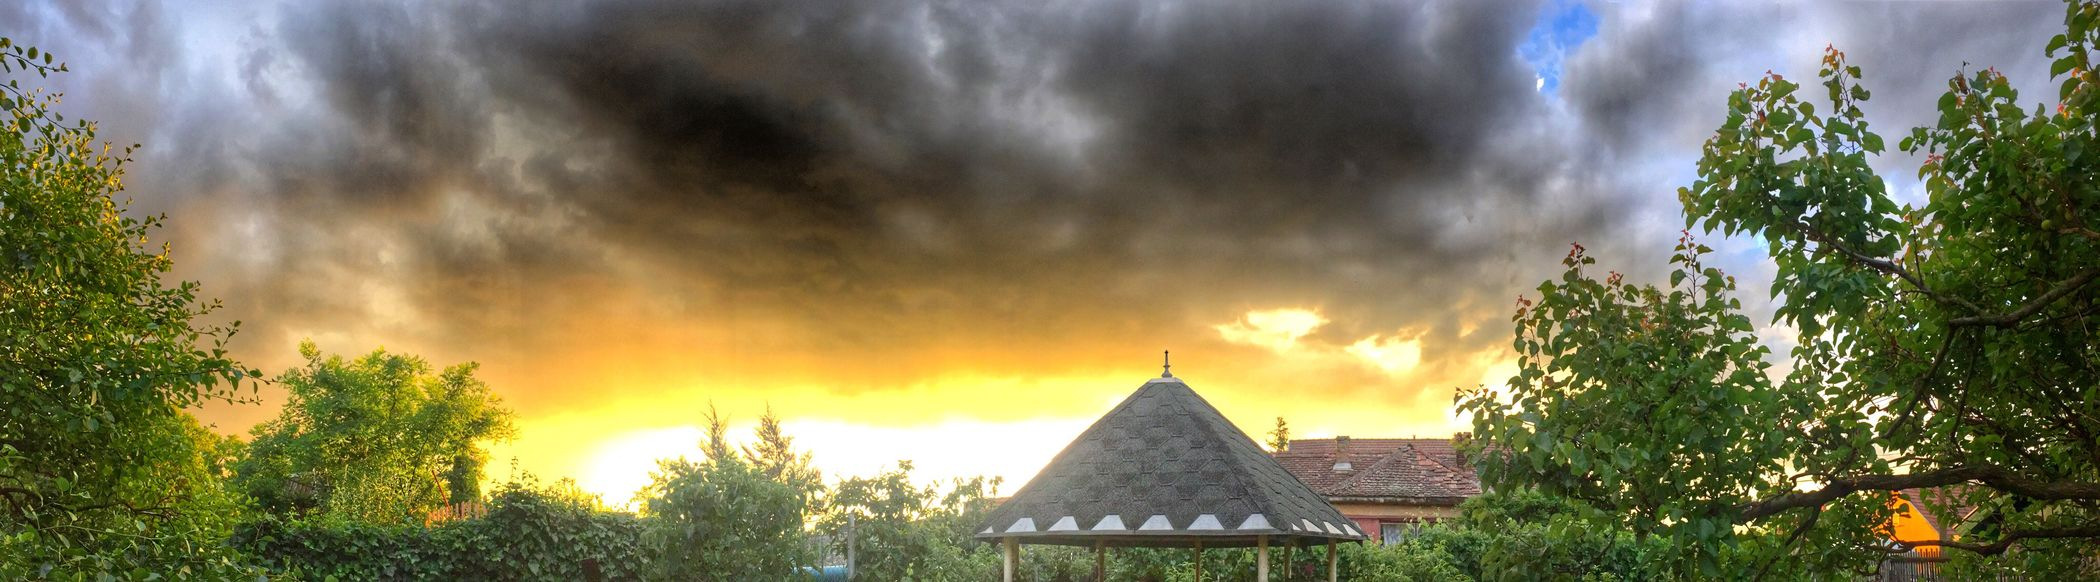 Sunshine Darkness Garden Light Behind Clouds Yellow Trees And Sky Trees Storm Storm Cloud Roof Taking Photos Enjoying Life